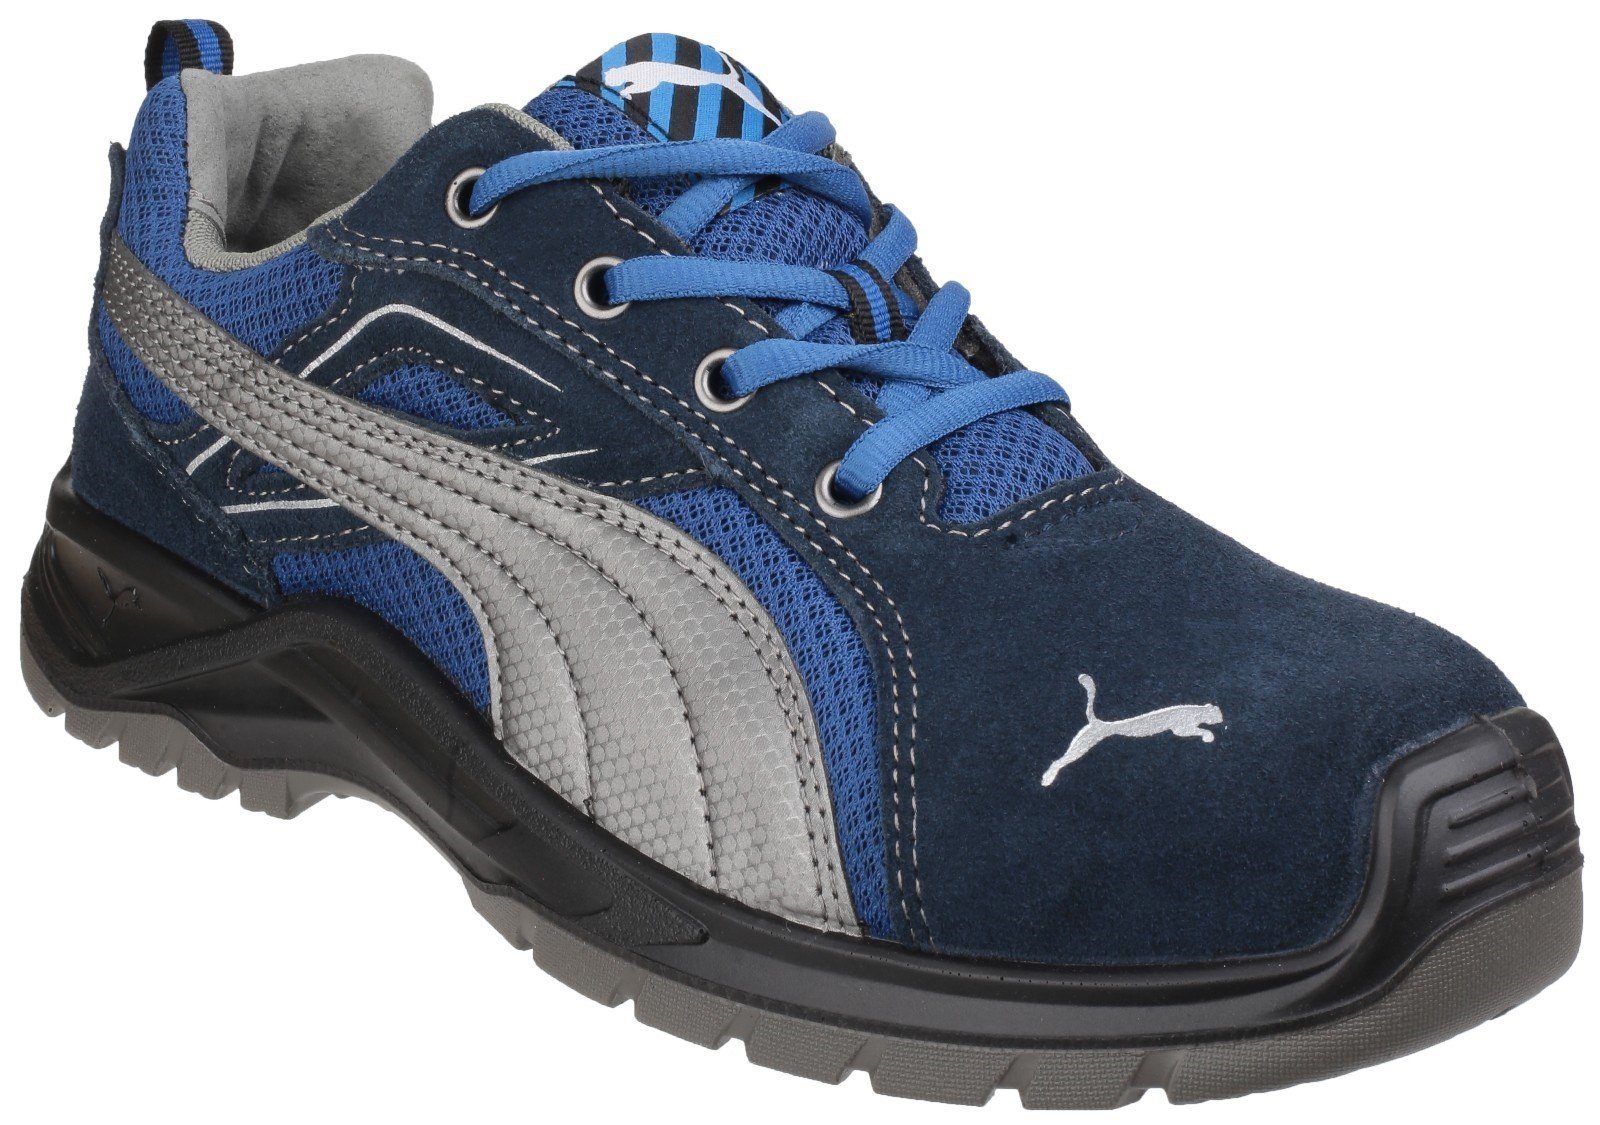 Puma Safety Unisex Omni Sky Low Lace up Safety Trainer Blue 24857 - Blue 6.5